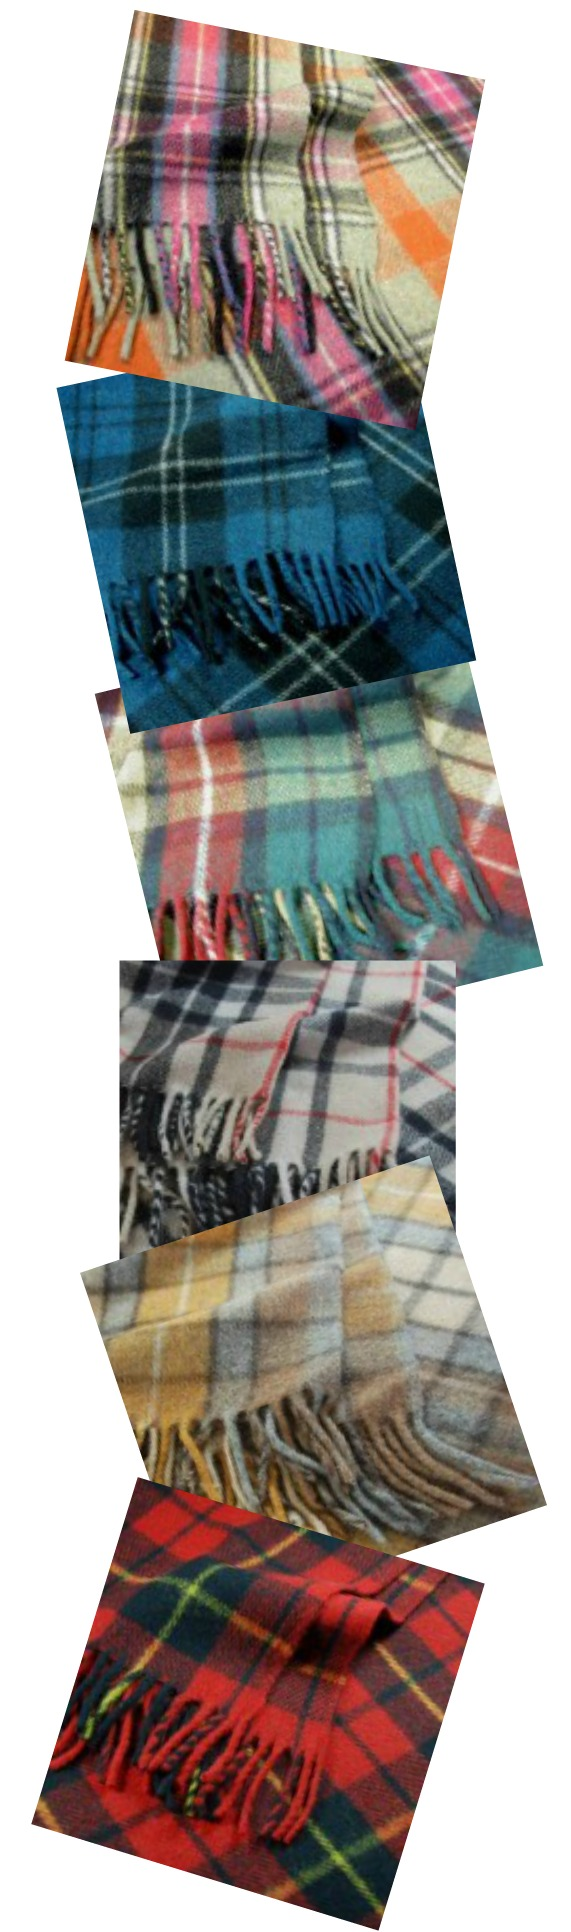 Win A Beautiful Tartan Rug From Buy A Kilt (Giveaway Now Closed) The Oliver\\\'s Madhouse